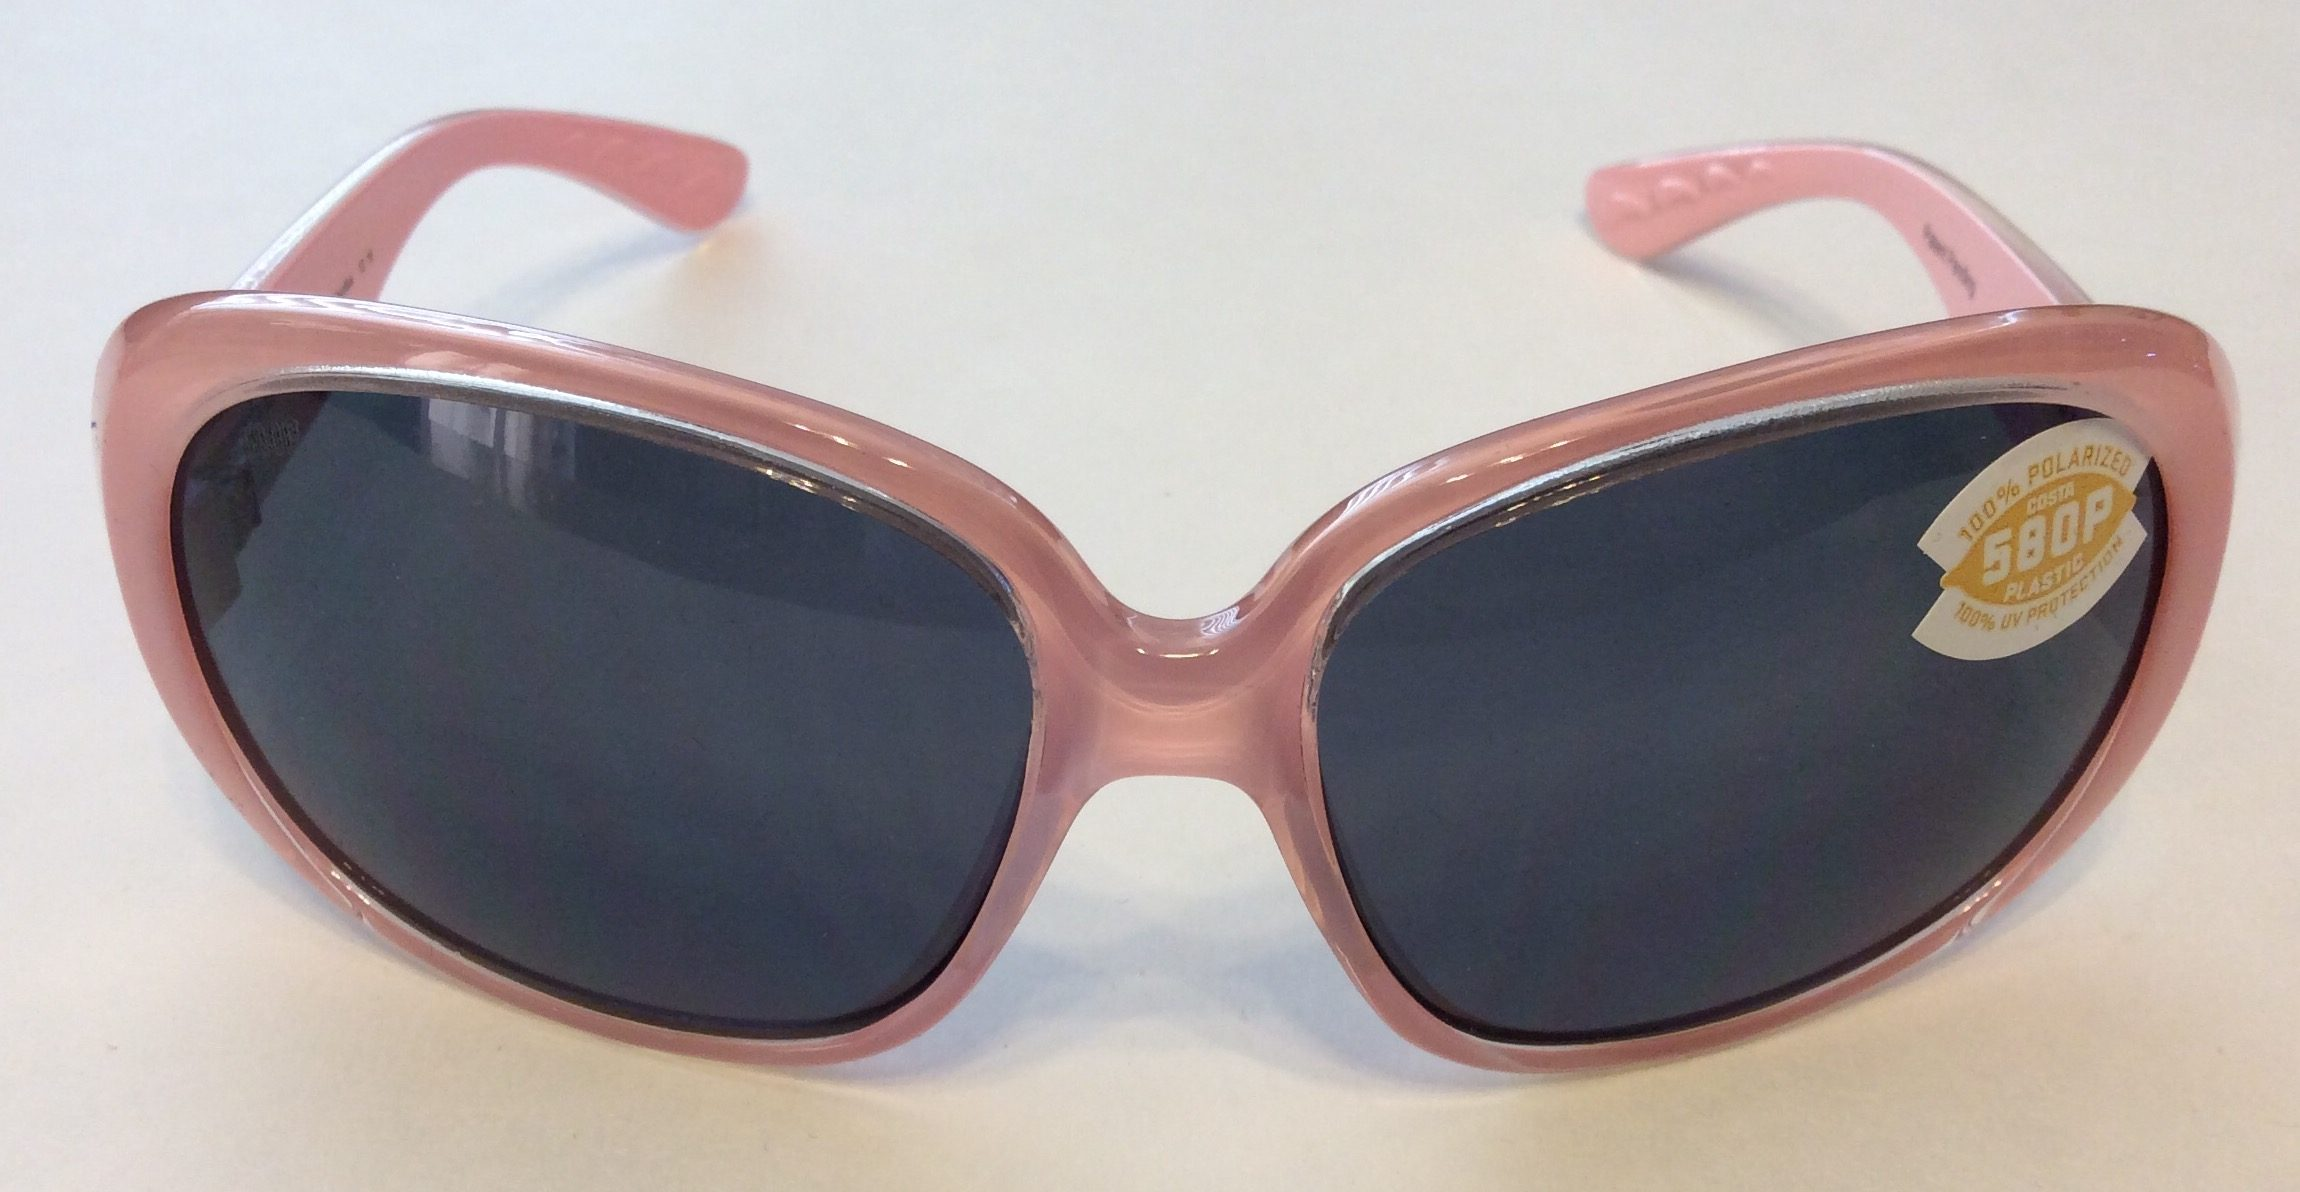 91d4bbc1698ce Costa Del Mar Hammock Sunglasses - Coral Pink POLARIZED Gray 580P